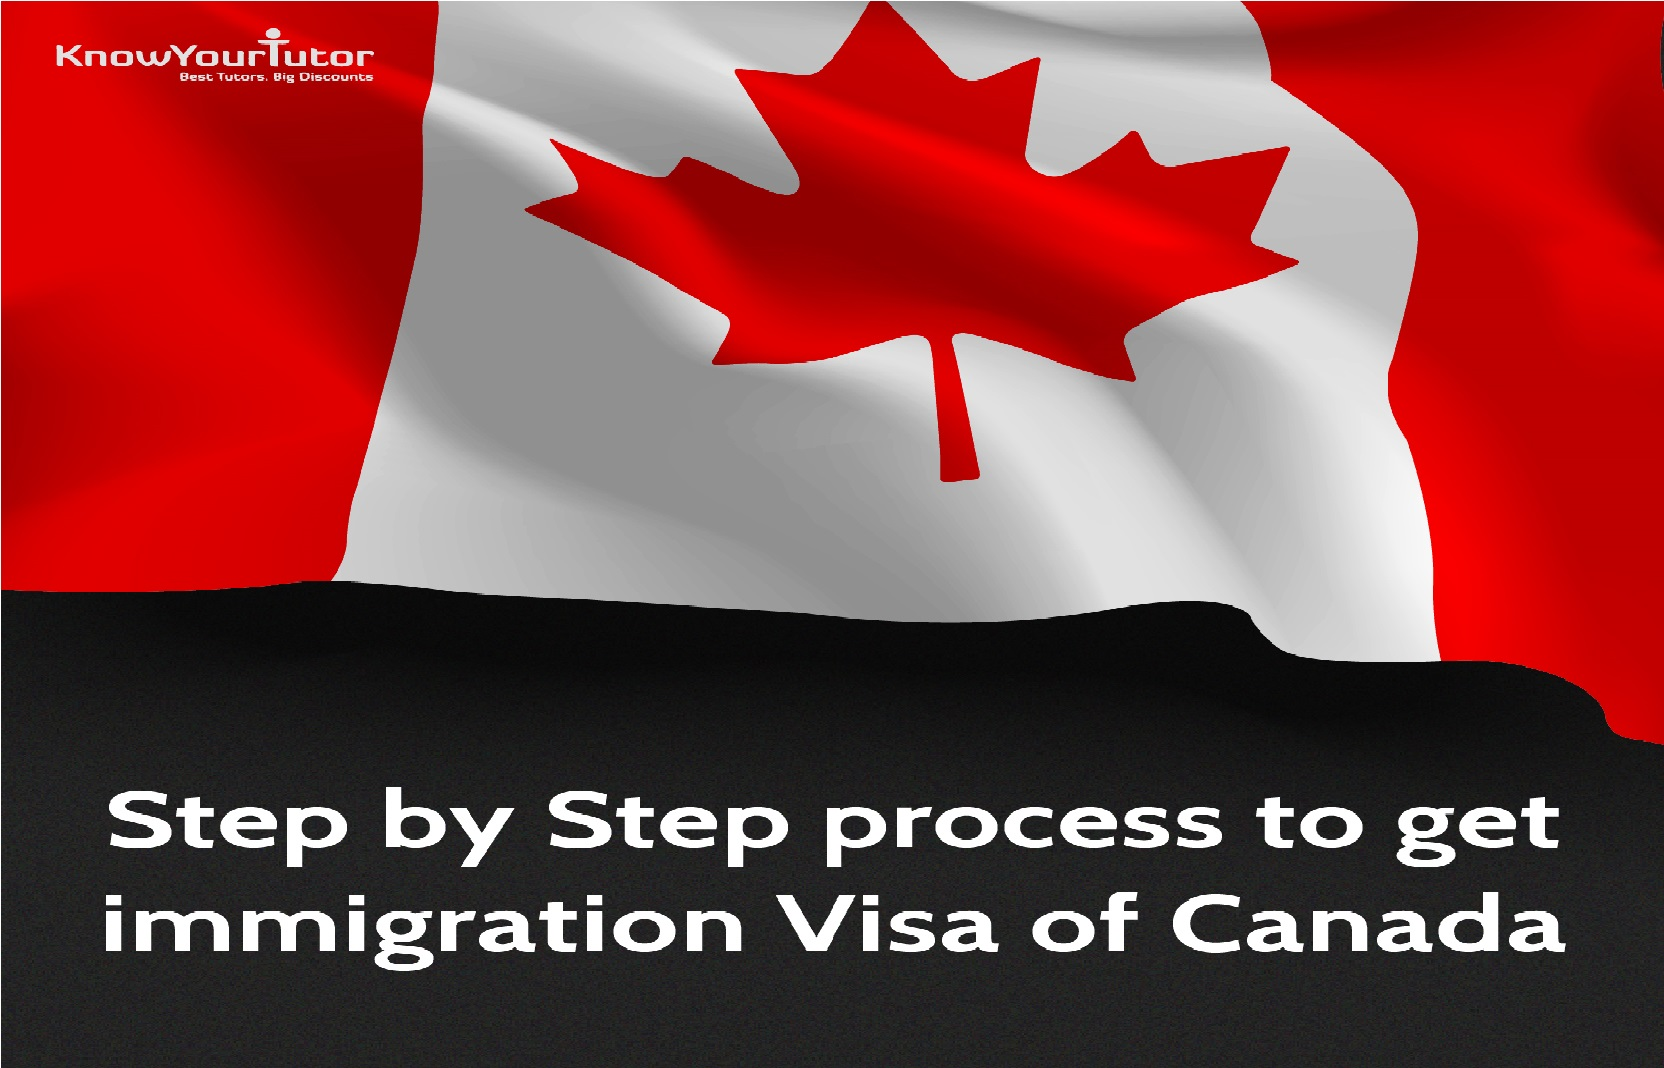 Step by Step process to get immigration visa of Canada